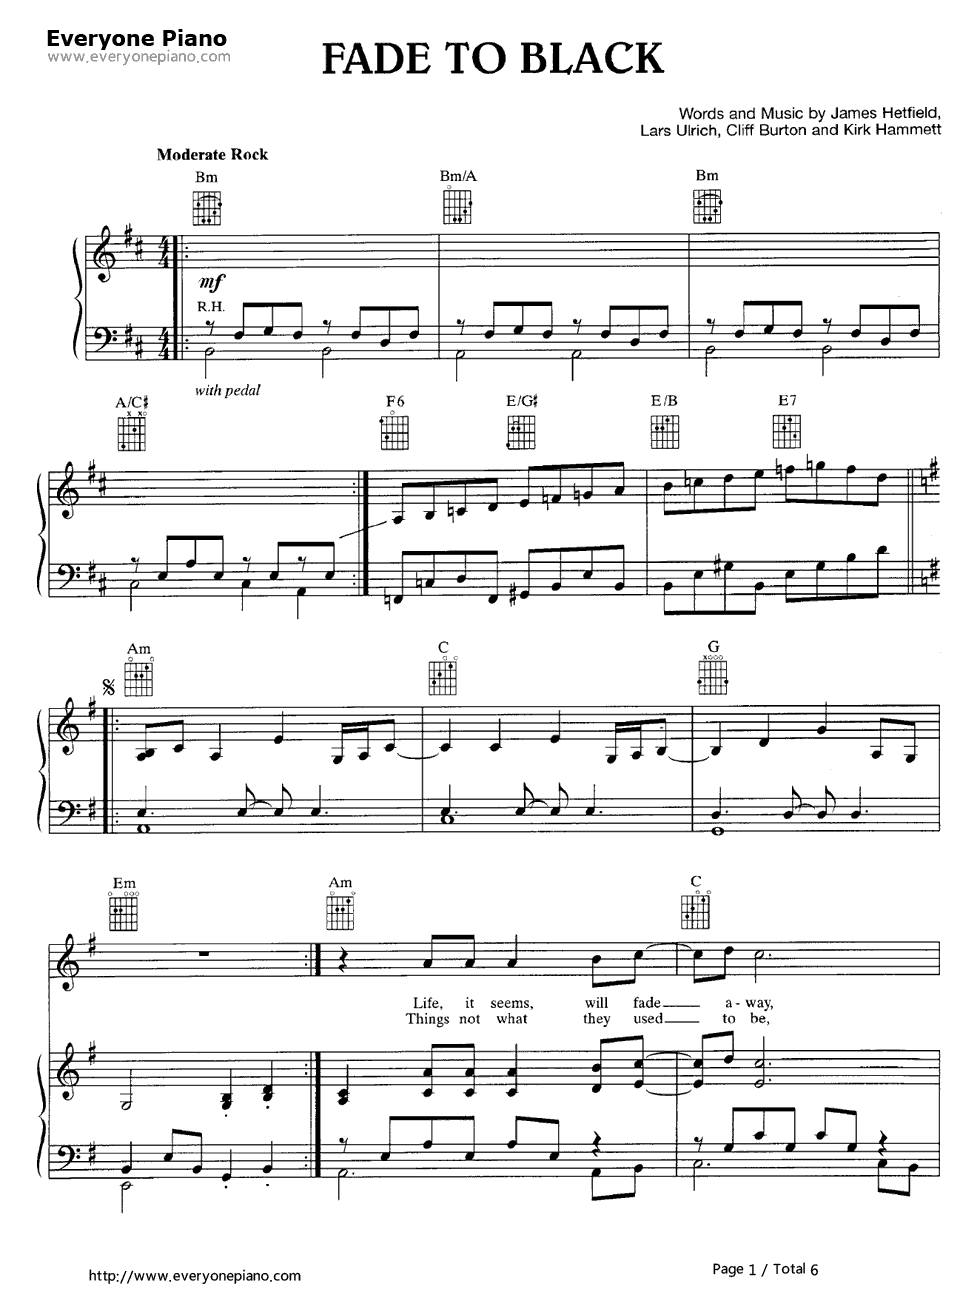 Fade to black metallica stave preview 1 free piano sheet music listen now print sheet fade to black metallica stave preview 1 hexwebz Image collections